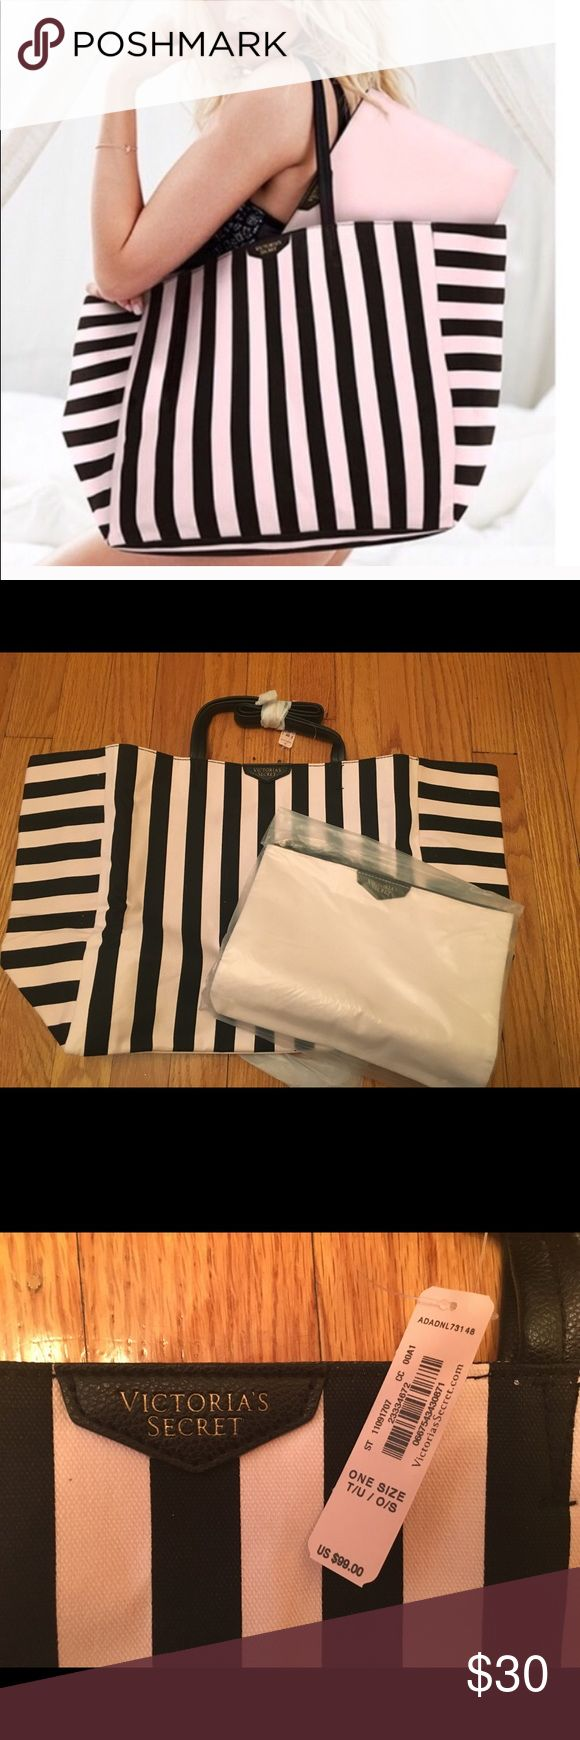 """VS stripe tote bag + accessory bag Brand new VS stripe tote with small accessory bag/clutch. No trades. Approximate size of tote is 23.5""""x 13"""" x 7"""". The pouch is approximately 10.5""""x7.75"""" Victoria's Secret Bags Totes"""